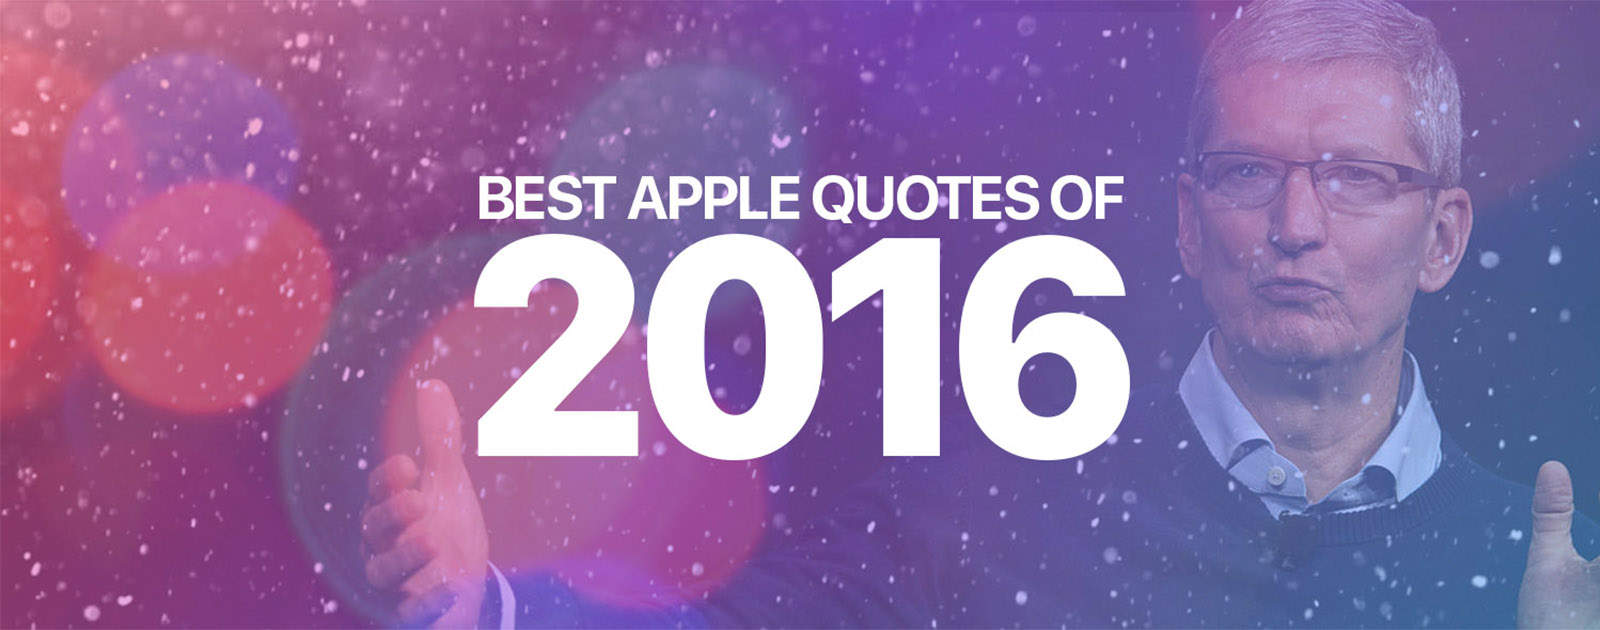 Best Apple quotes 2016